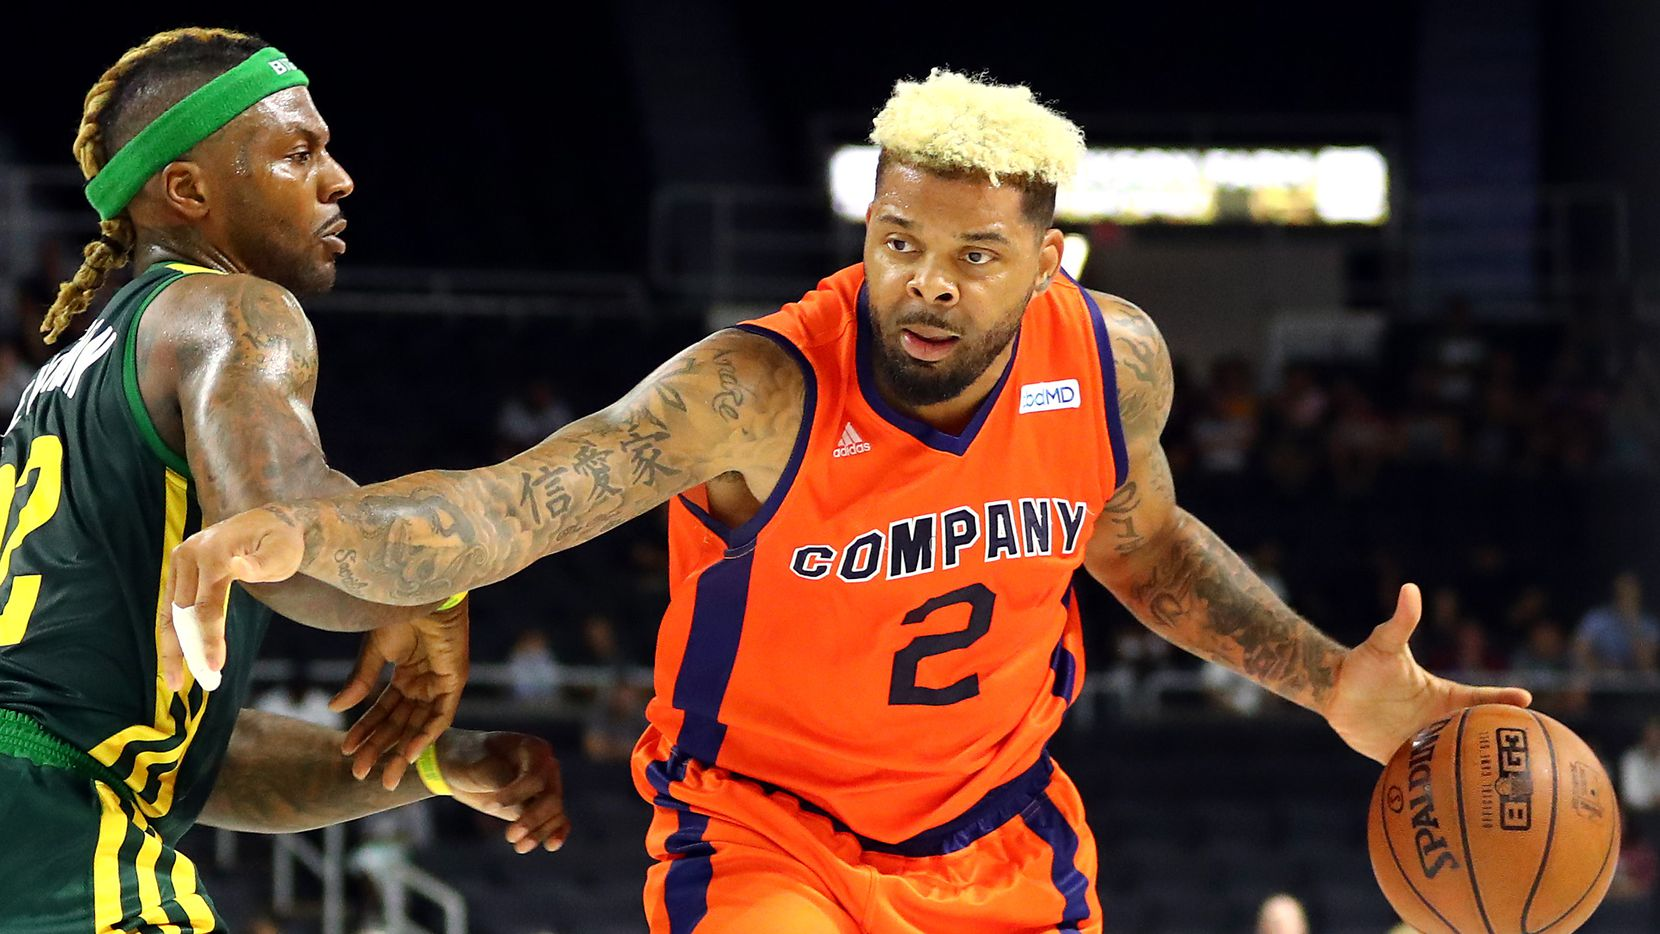 PROVIDENCE, RHODE ISLAND - JULY 13: Andre Emmett #2 of 3's Company handles the ball against the Ball Hogs during week four of the BIG3 three on three basketball league at Dunkin' Donuts Center on July 13, 2019 in Providence, Rhode Island. (Photo by Adam Glanzman/BIG3/Getty Images) ORG XMIT: 775356079